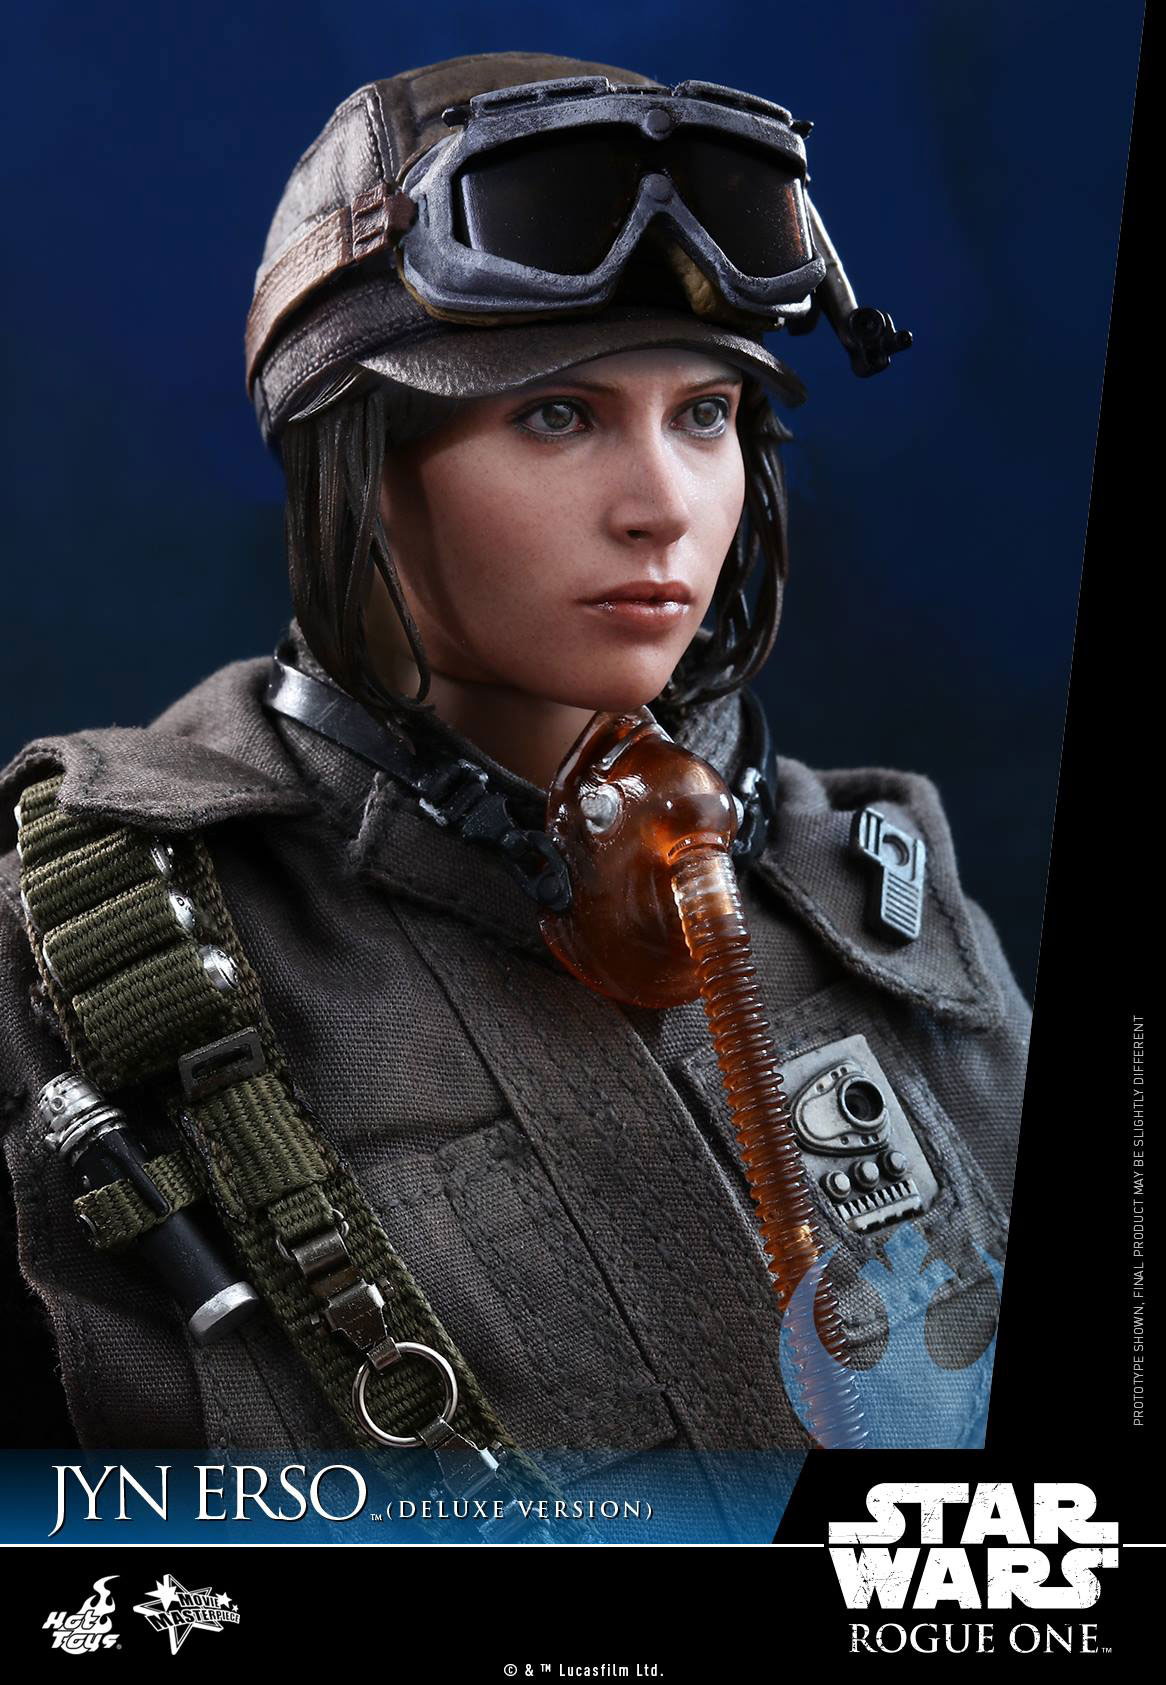 hot-toys-star-wars-rogue-one-figure-deluxe-version-7